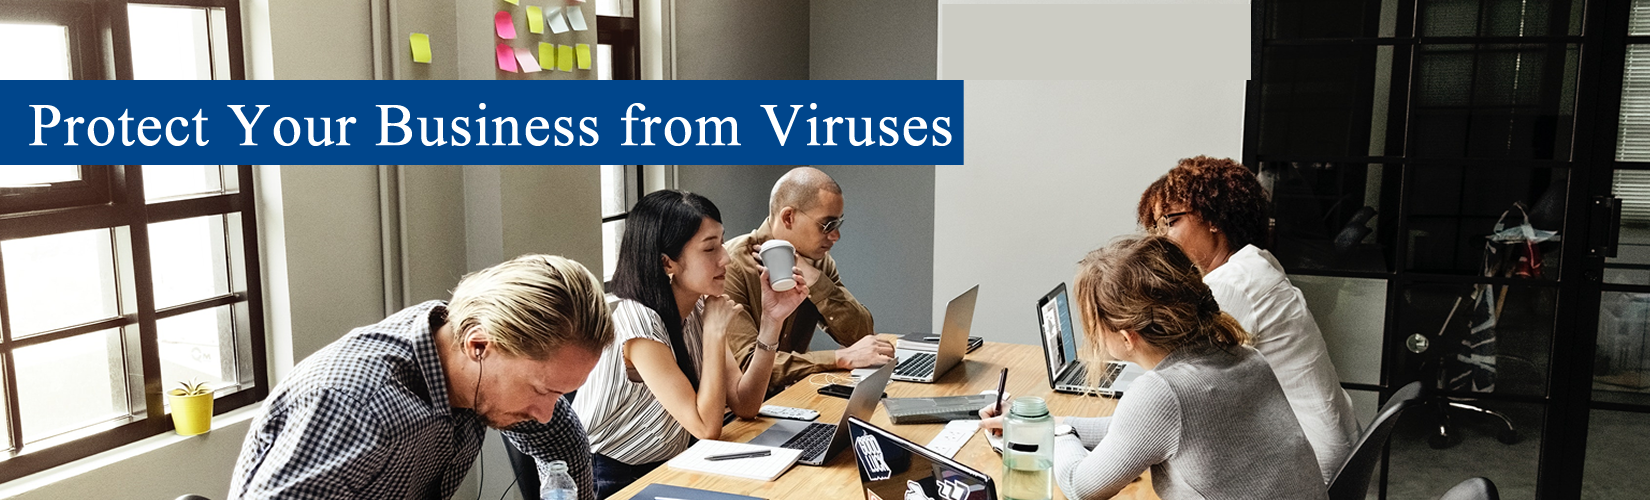 Protect Your Business from Computer Viruses | Second Creek Technologies